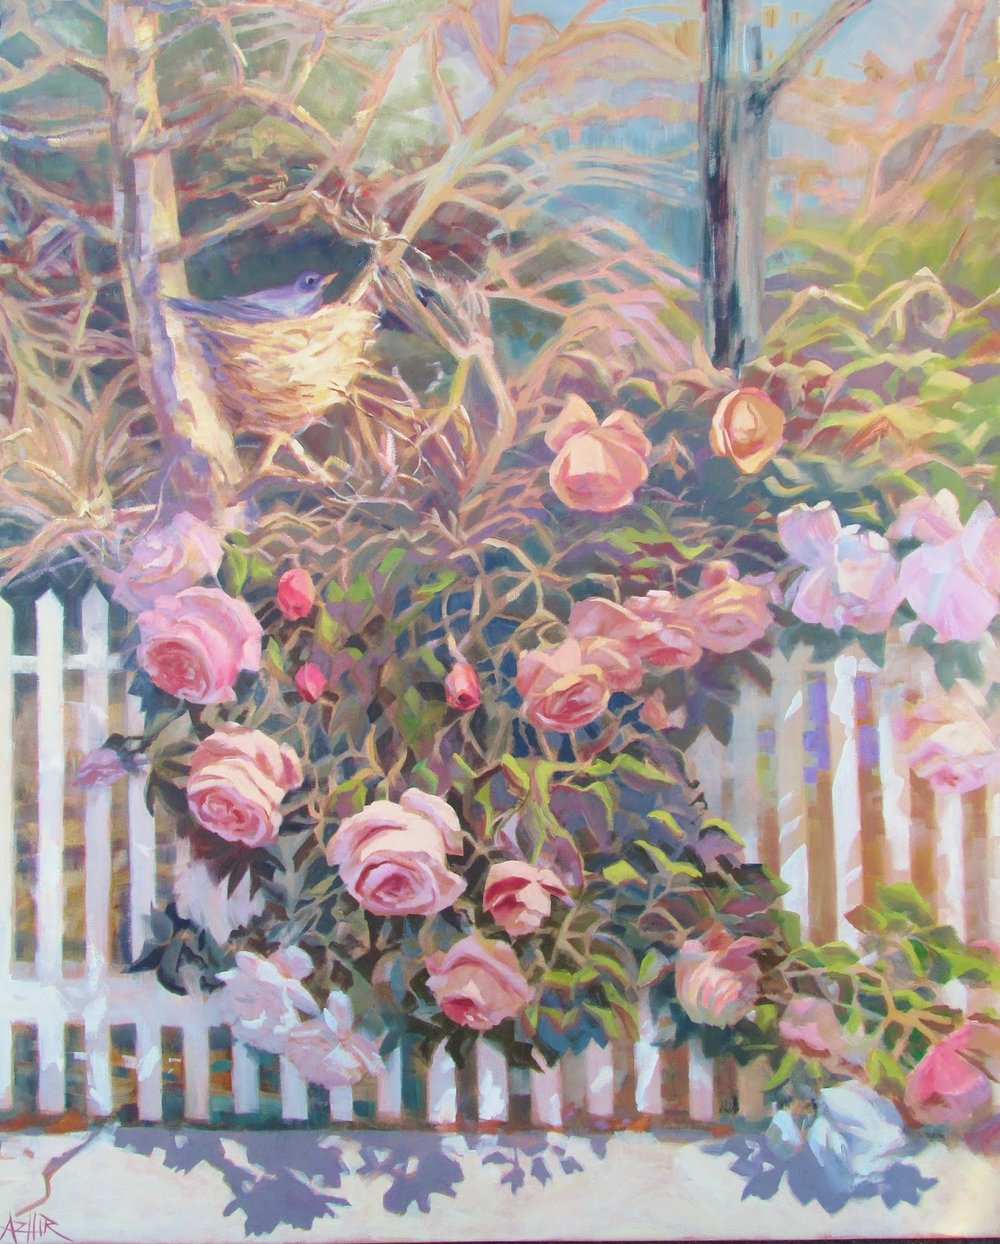 SOLD, Along the Picket Fence, Oil on Canvas, Copyright 2016 Hirschten